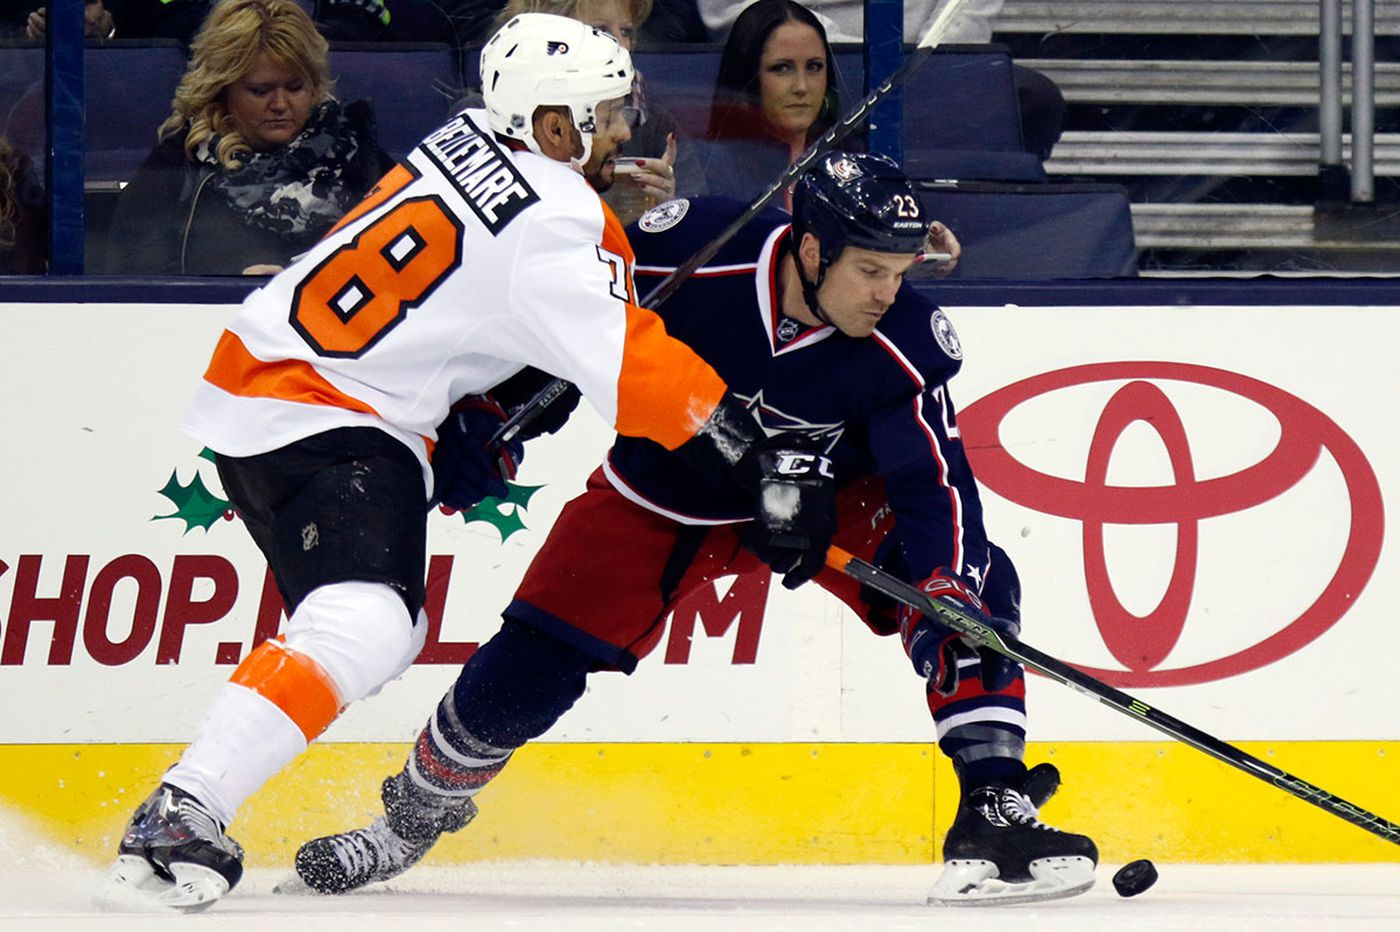 Flyers fall to Blue Jackets in shootout